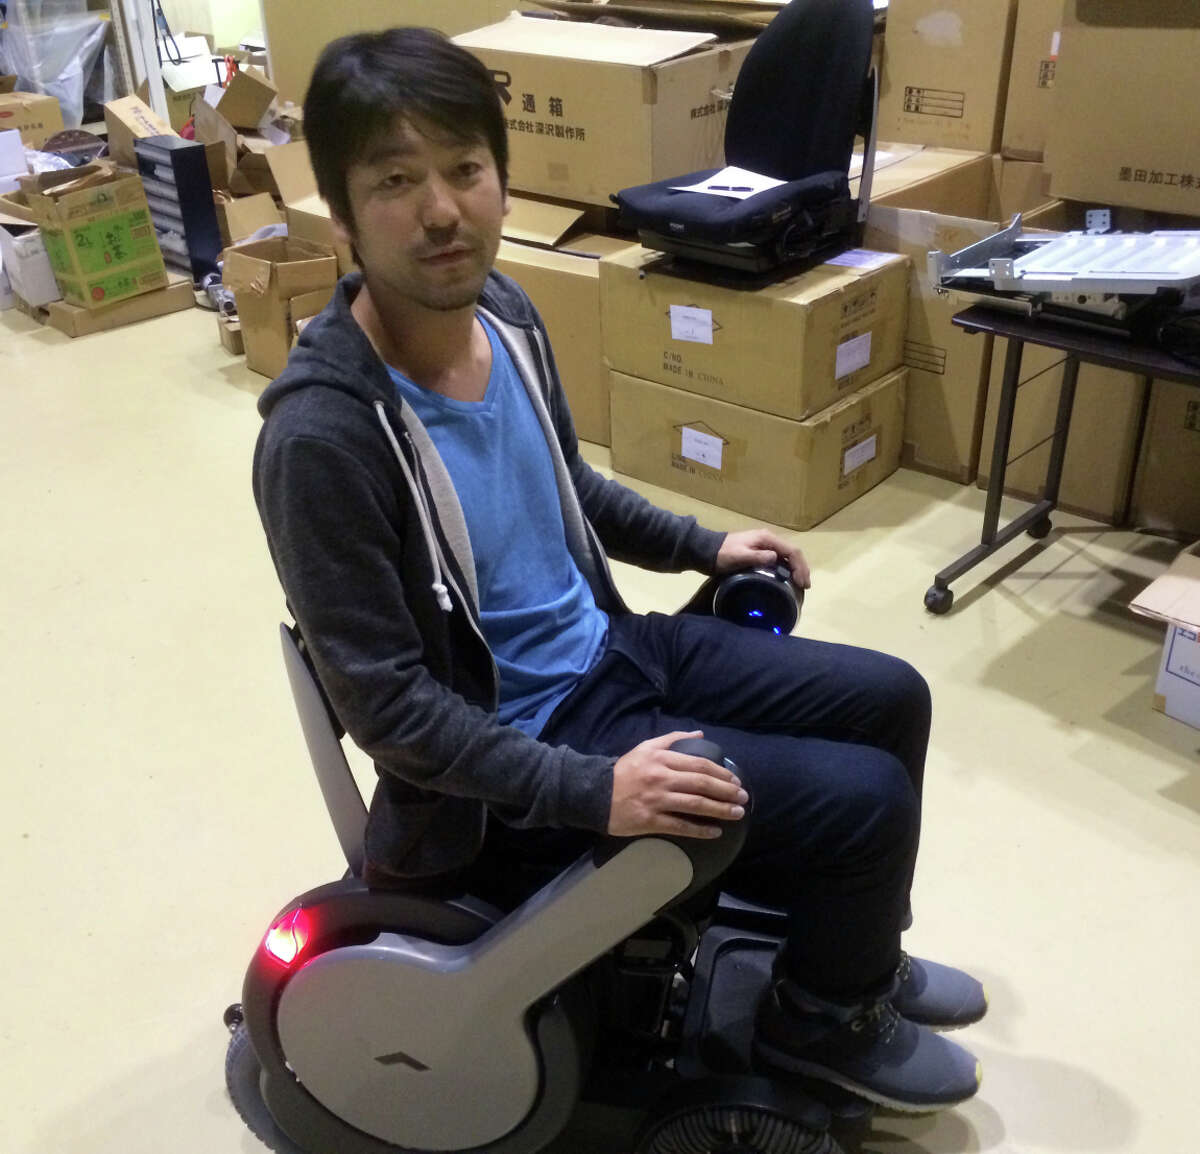 """Satoshi Sugie, CEO of Whill, shows off his startup's electric """"personal mobility device"""" - an advanced wheelchair that can be controlled with a smartphone app and has treads capable of handling almost any level terrain."""